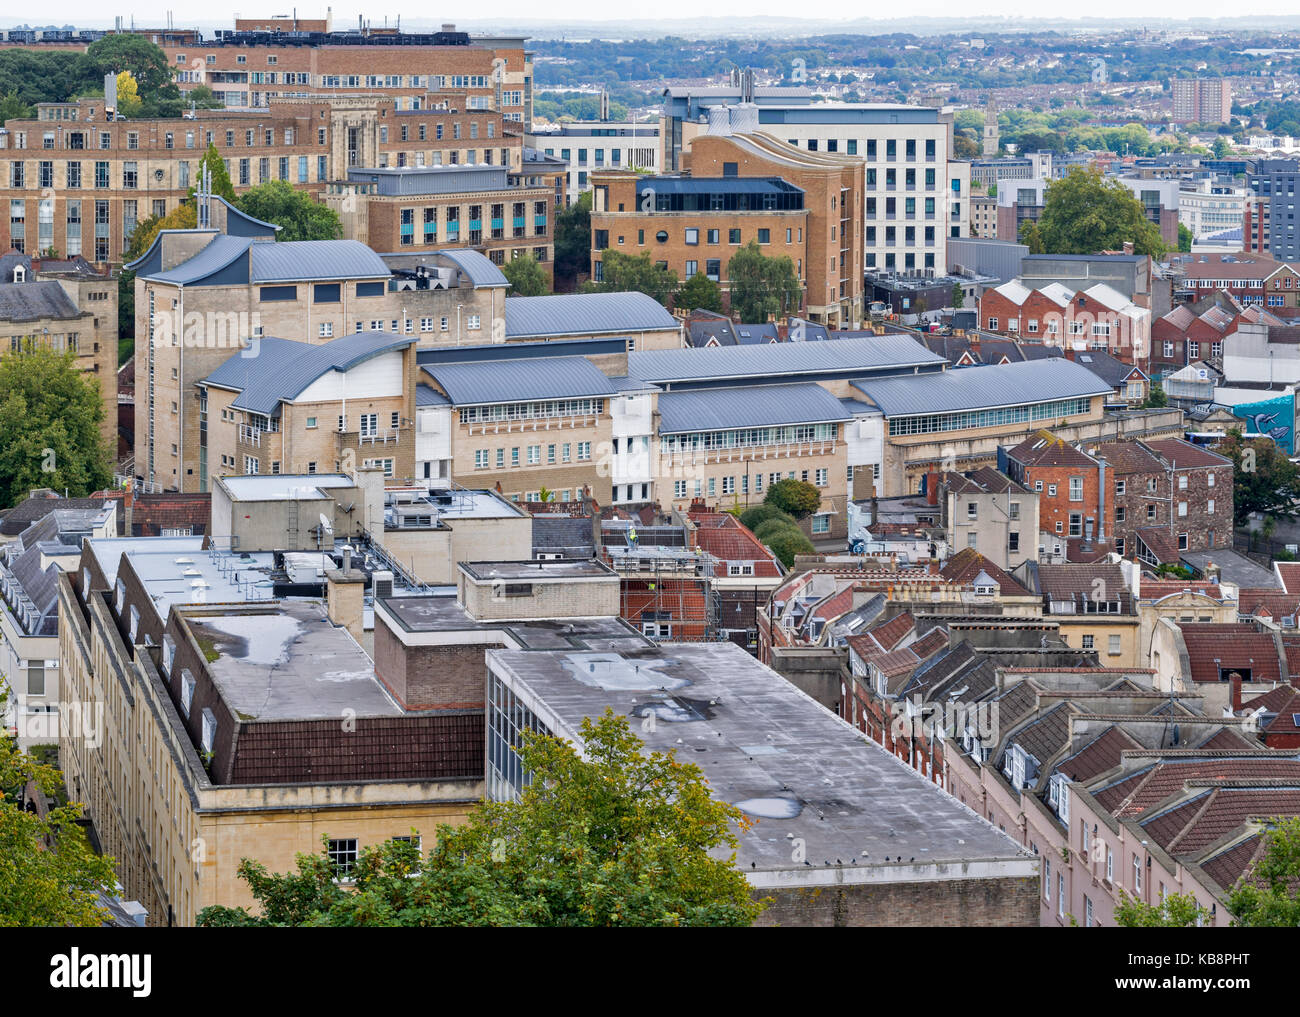 BRISTOL ENGLAND CITY CENTRE CABOT TOWER BRANDON HILL VIEW TO THE UNIVERSITY MEDICAL SCHOOL - Stock Image